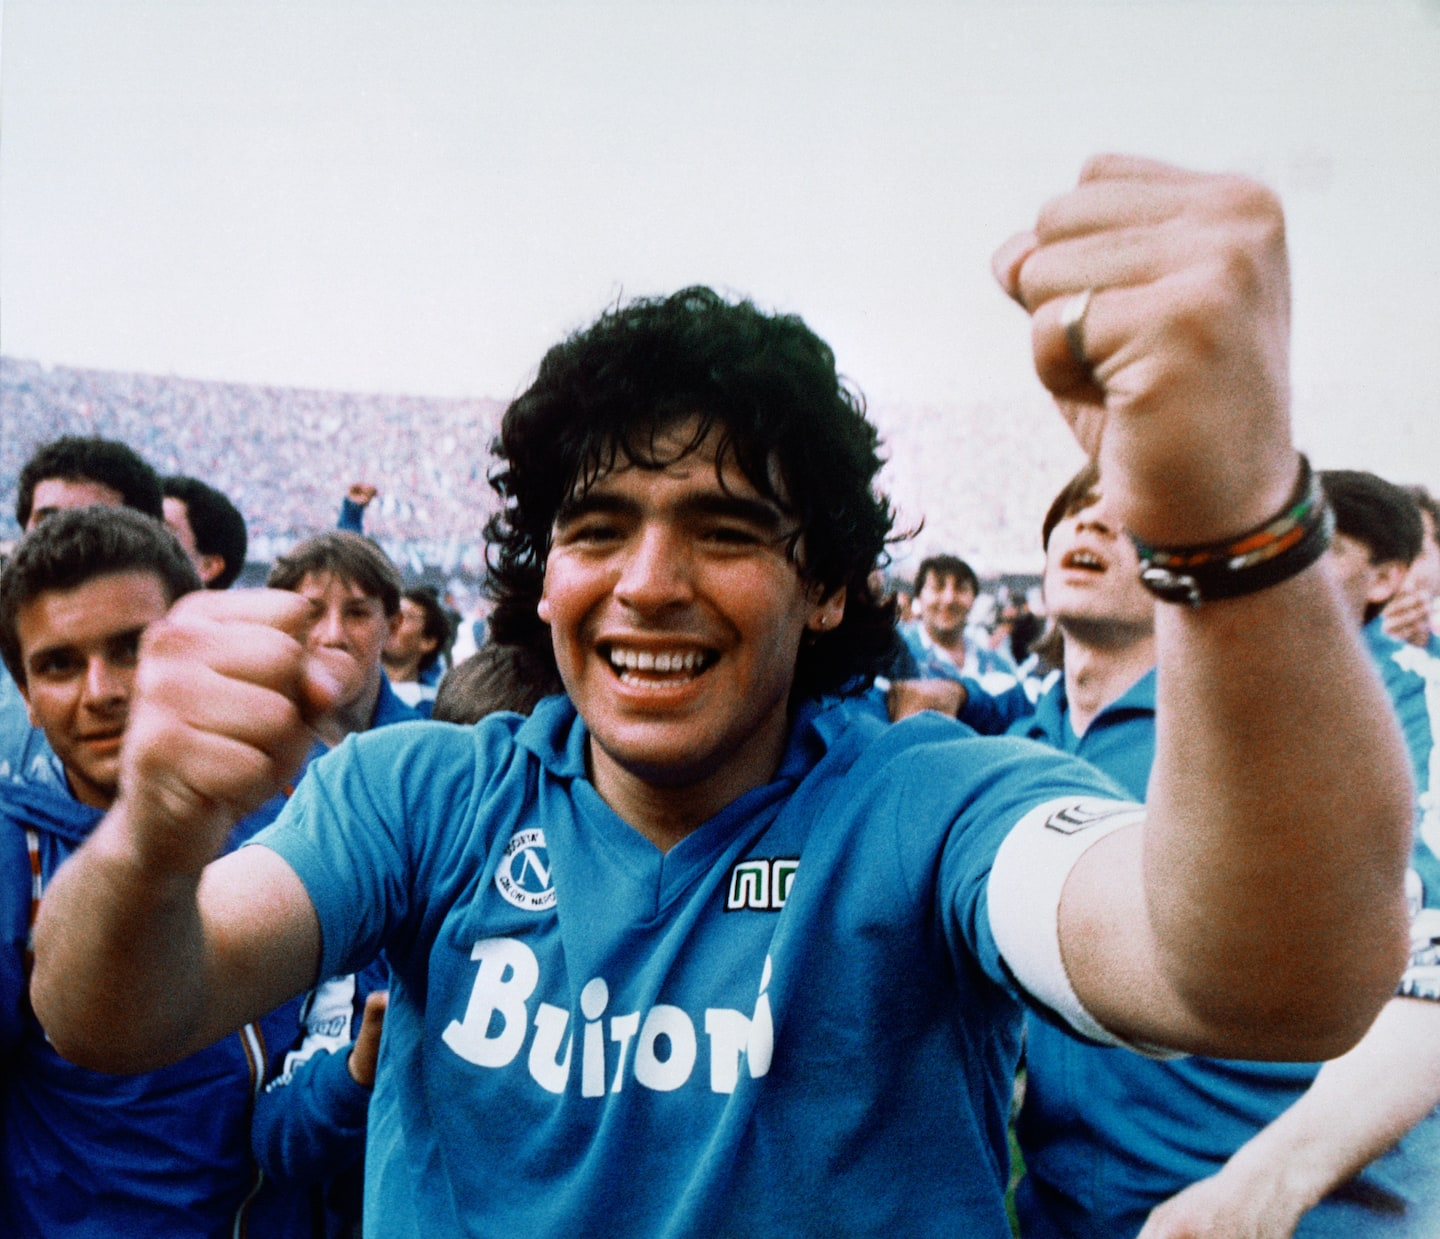 Diego Maradona's death calls for us to examine greatness, which matters as much in arts as it does in sport